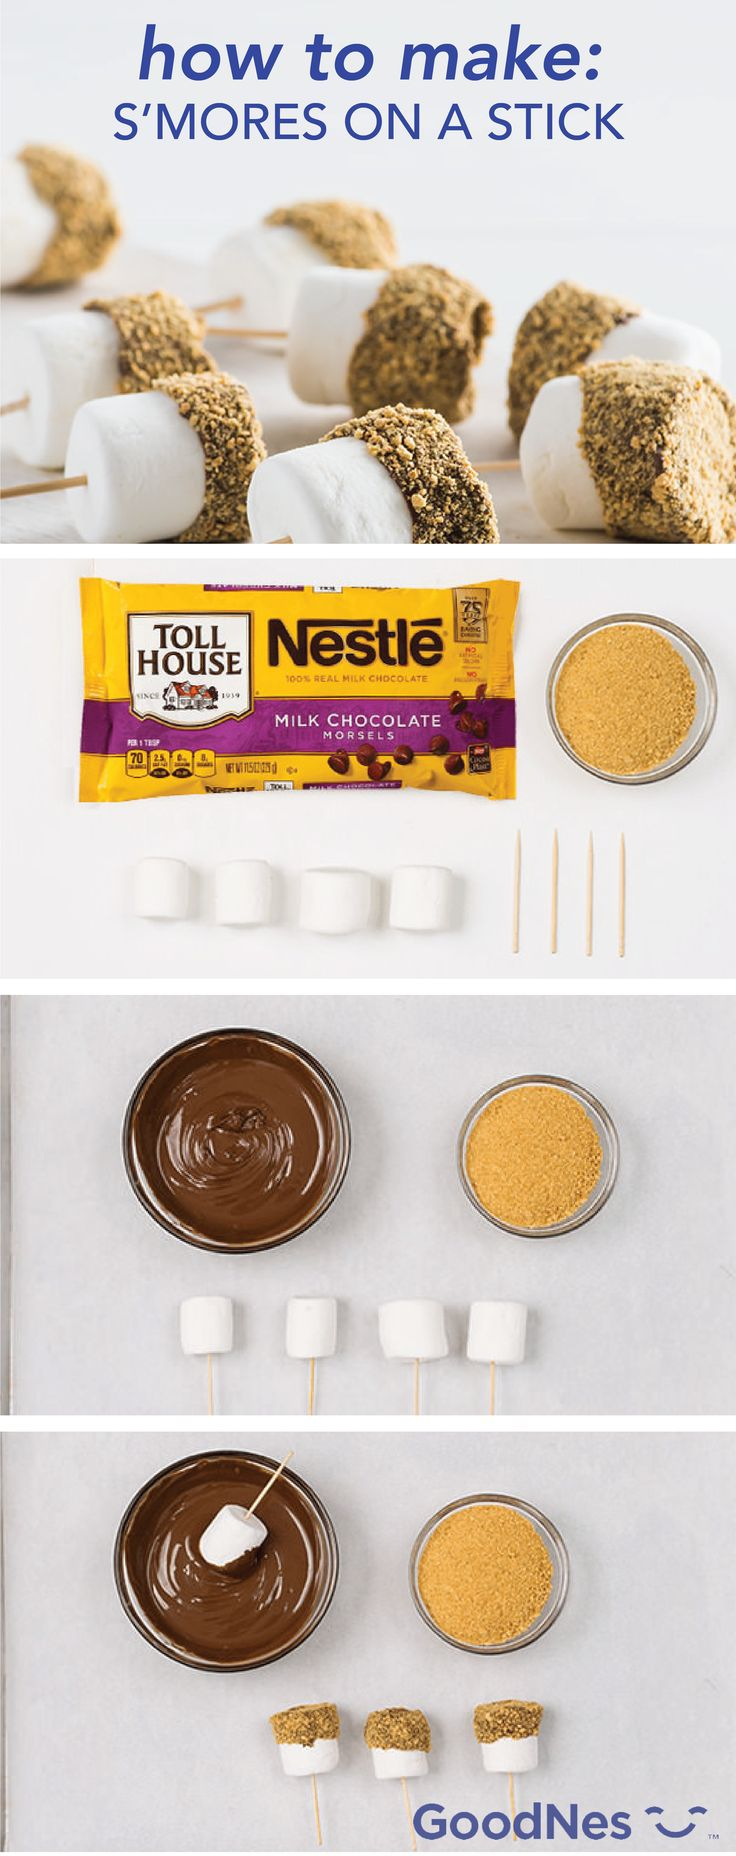 You don't need a fire to make some s'mores! Dip marshmallows into melted Nestlé® Toll House® Milk Chocolate Morsels and roll them in graham cracker crumbs. This no-bake treat is quick, easy and budget-friendly, making for the perfect dessert or after school snack.